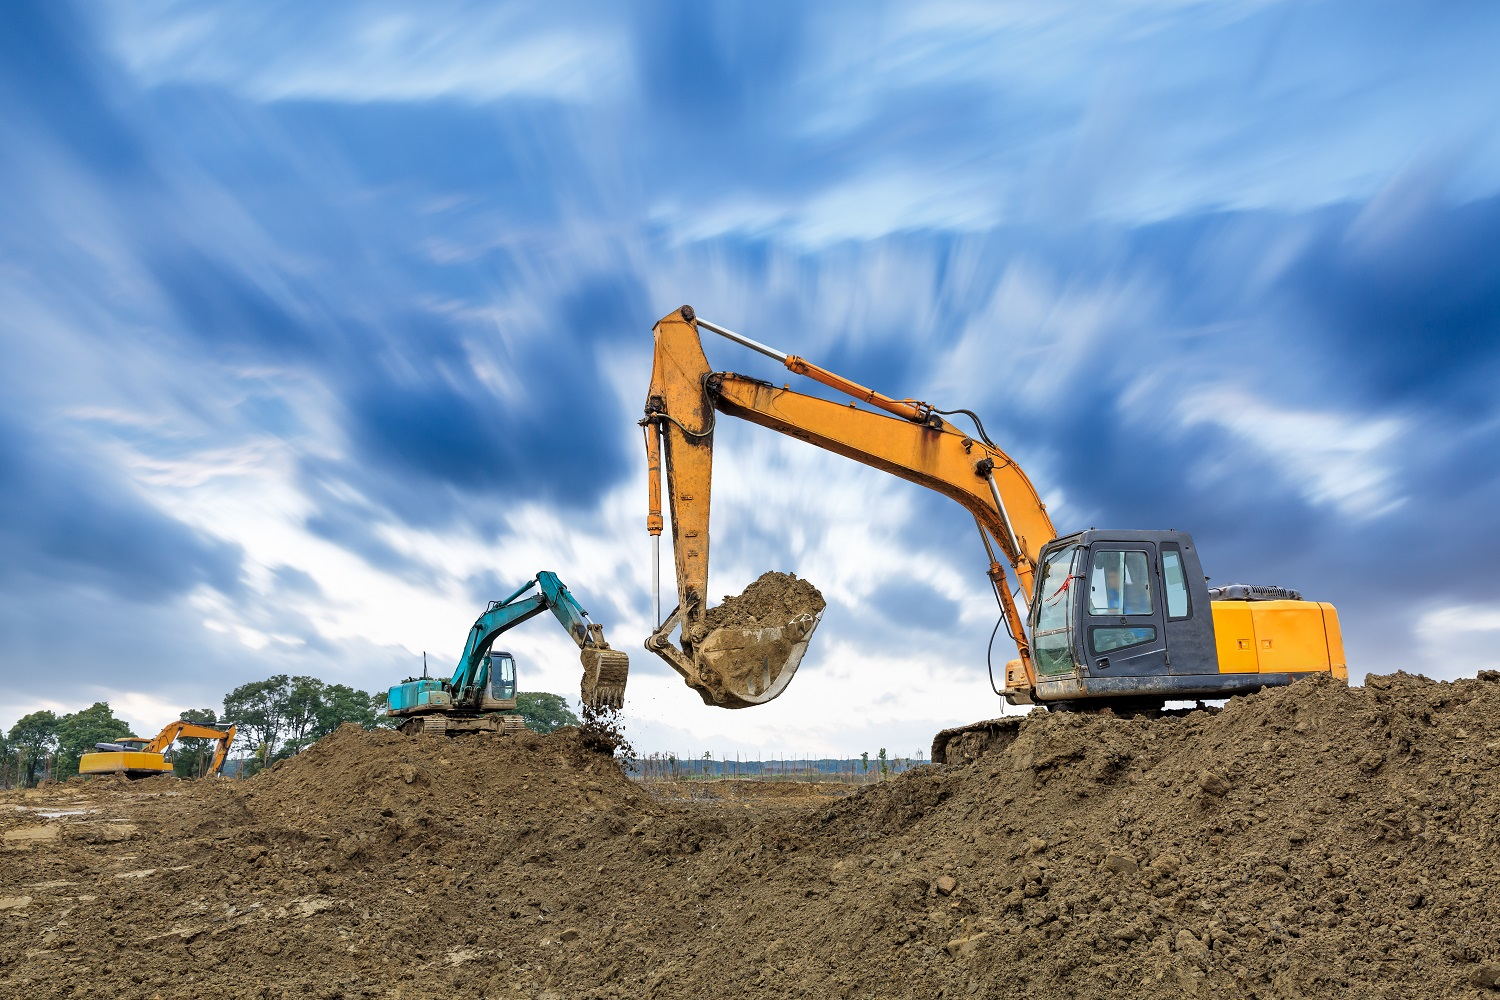 Excavator Accident Lands Engineering Company £800,000 Fine